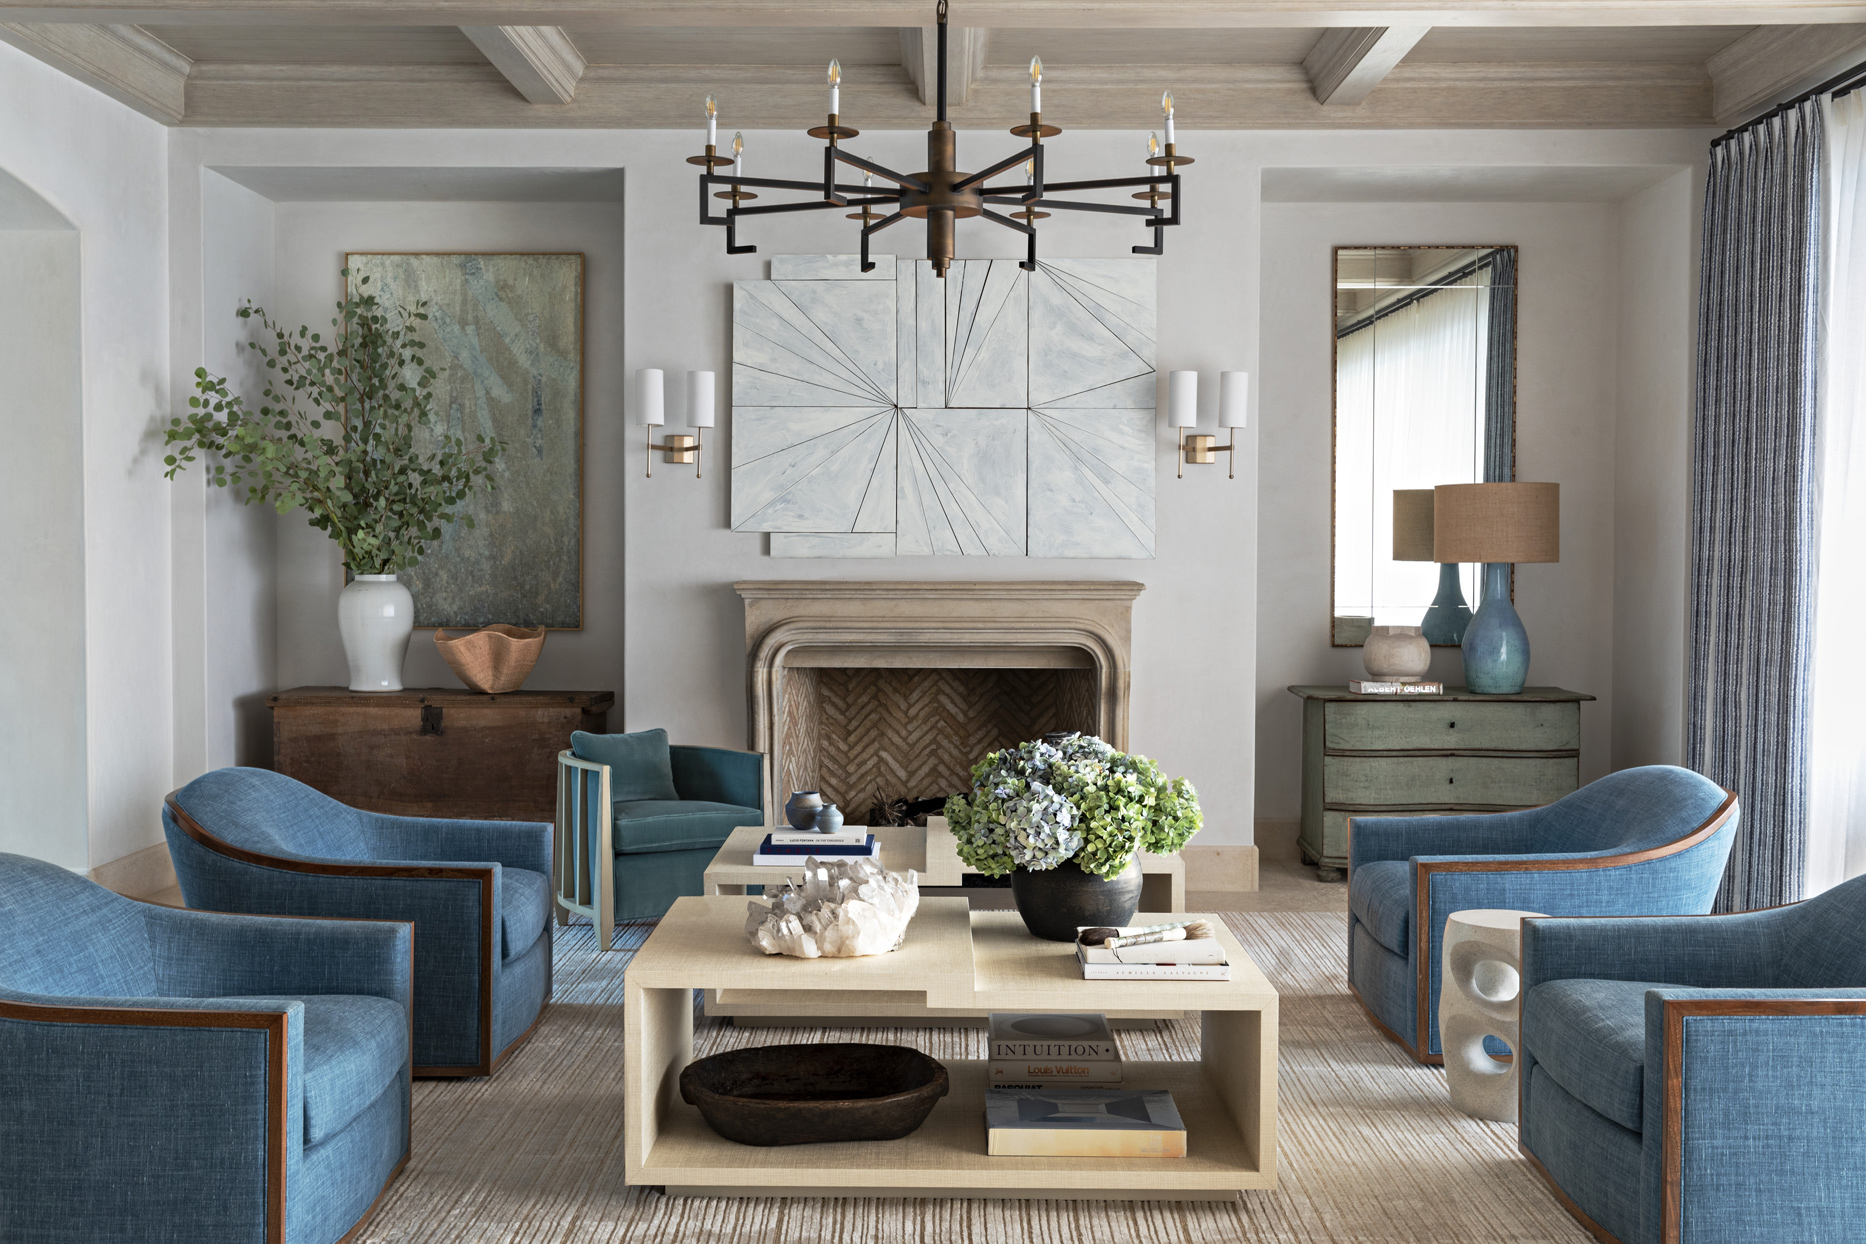 neutral-colored family room with blue accents